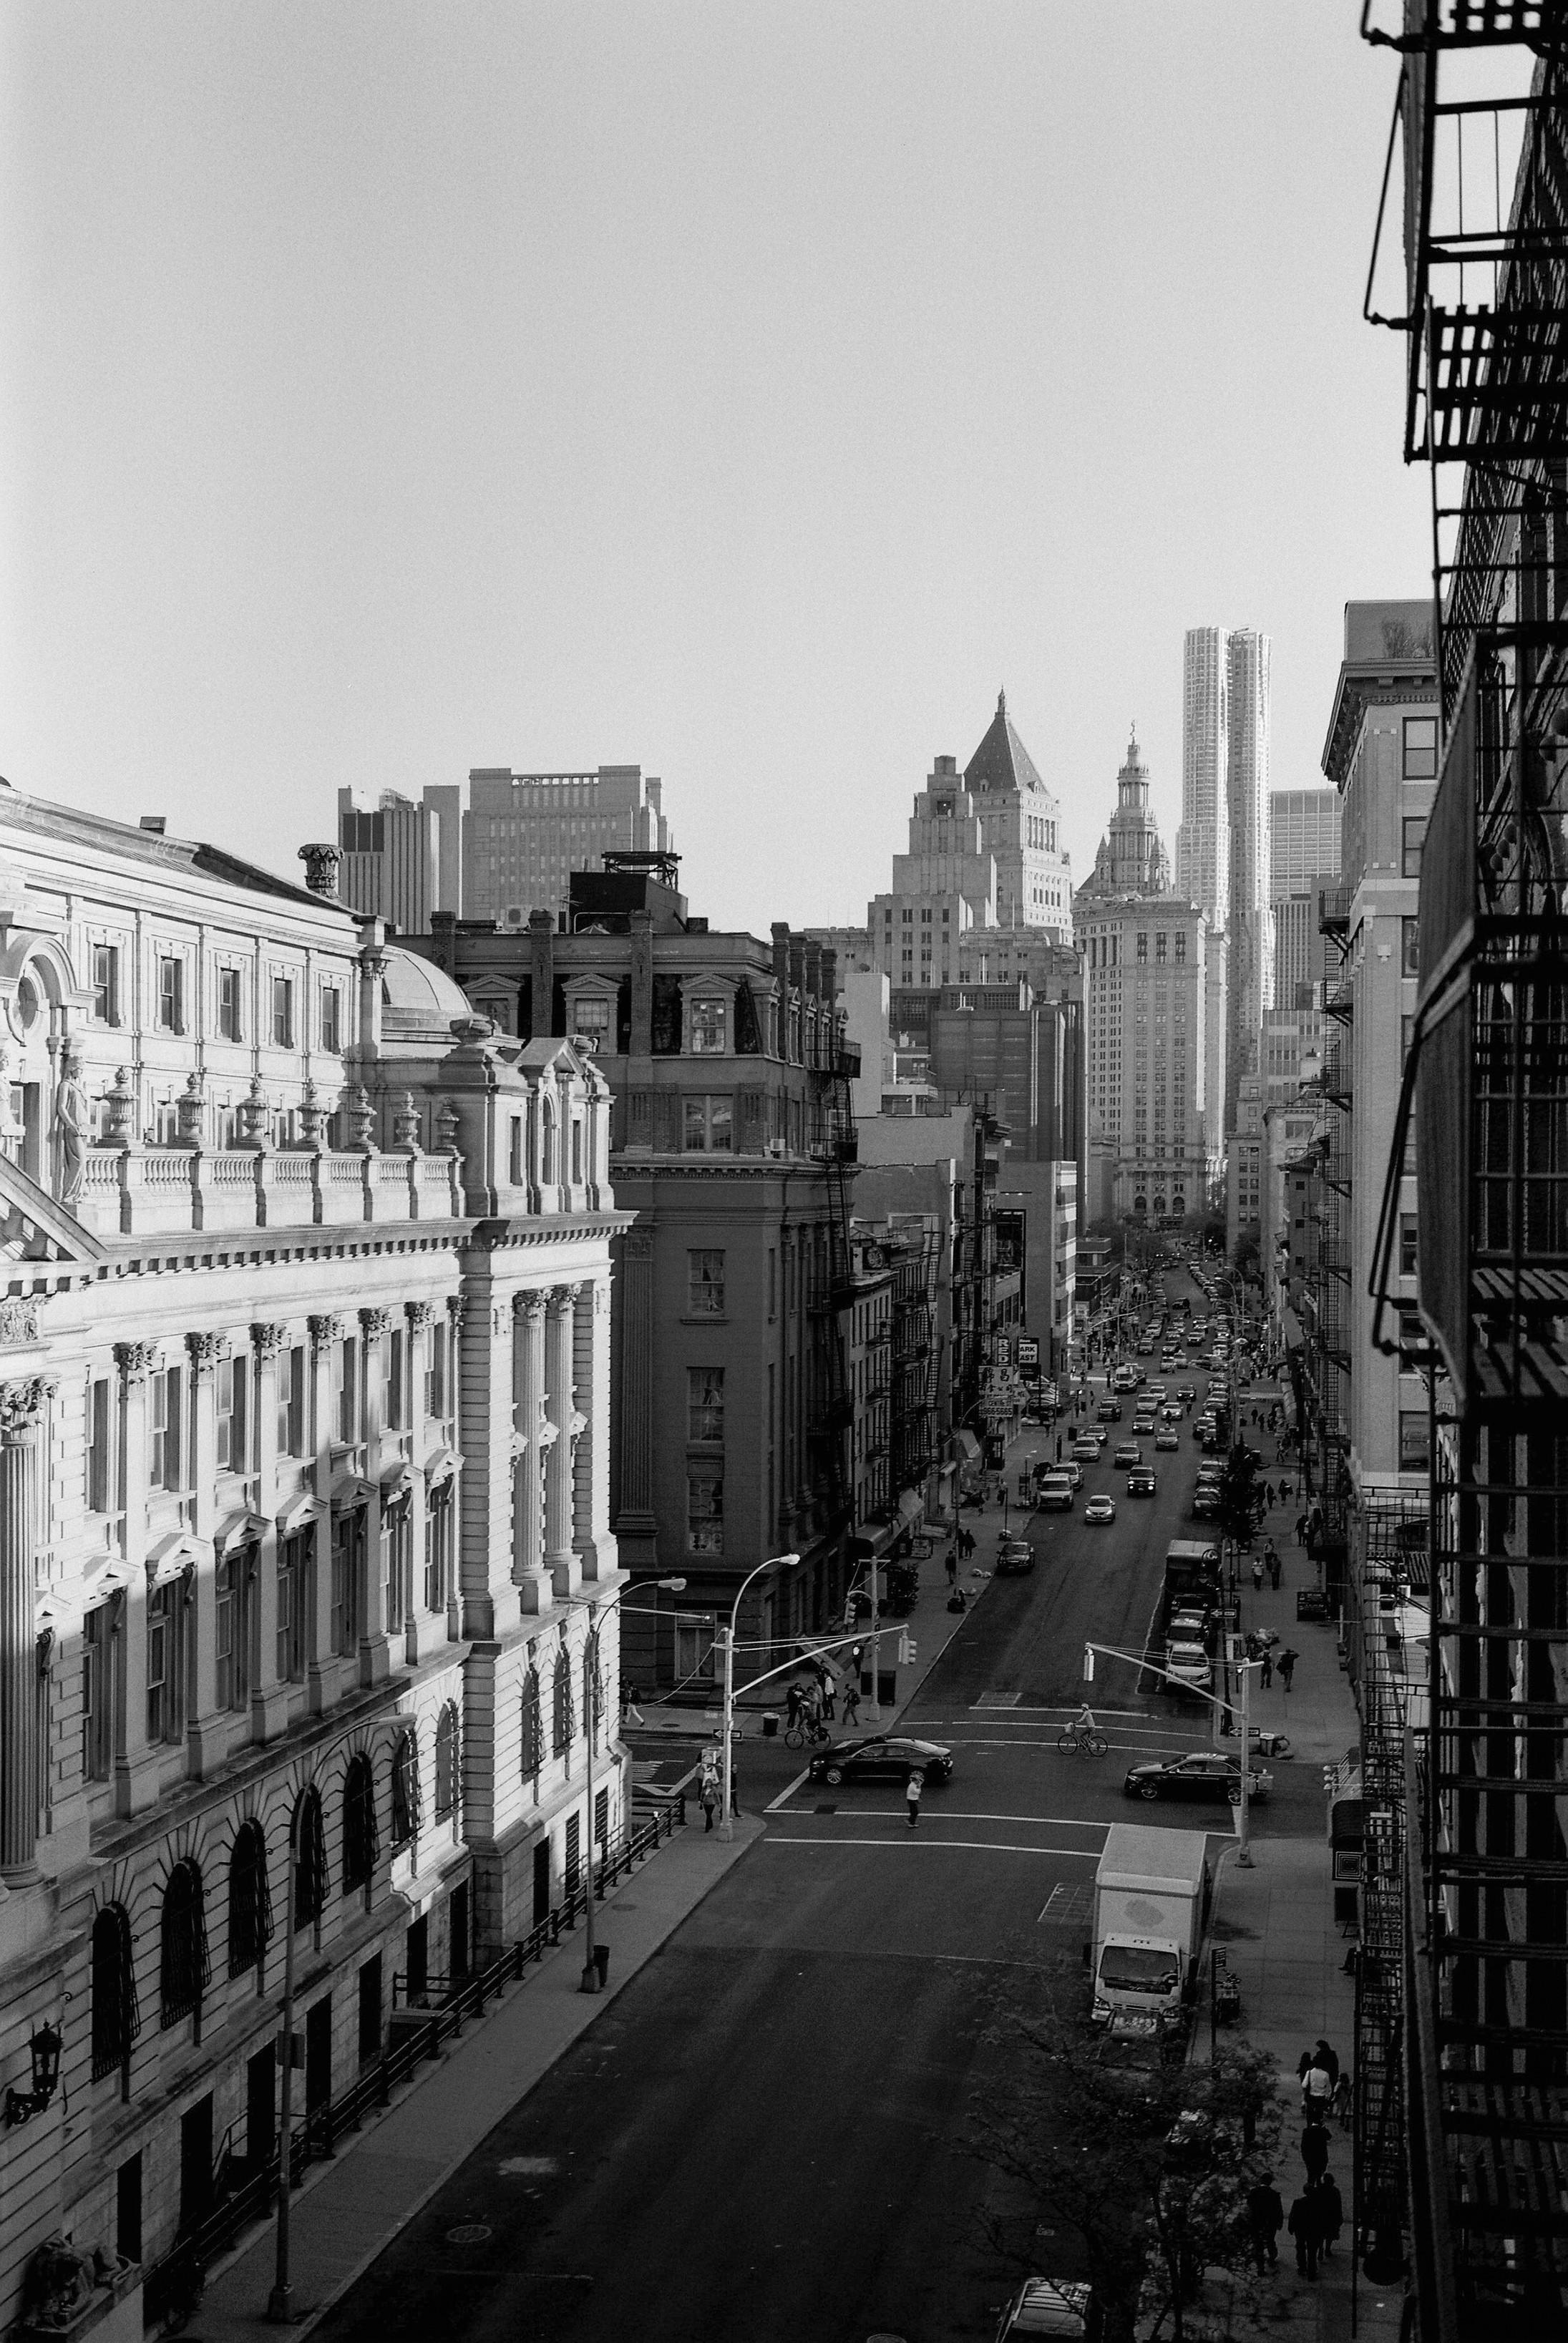 A day in Manhattan - image 2 - student project